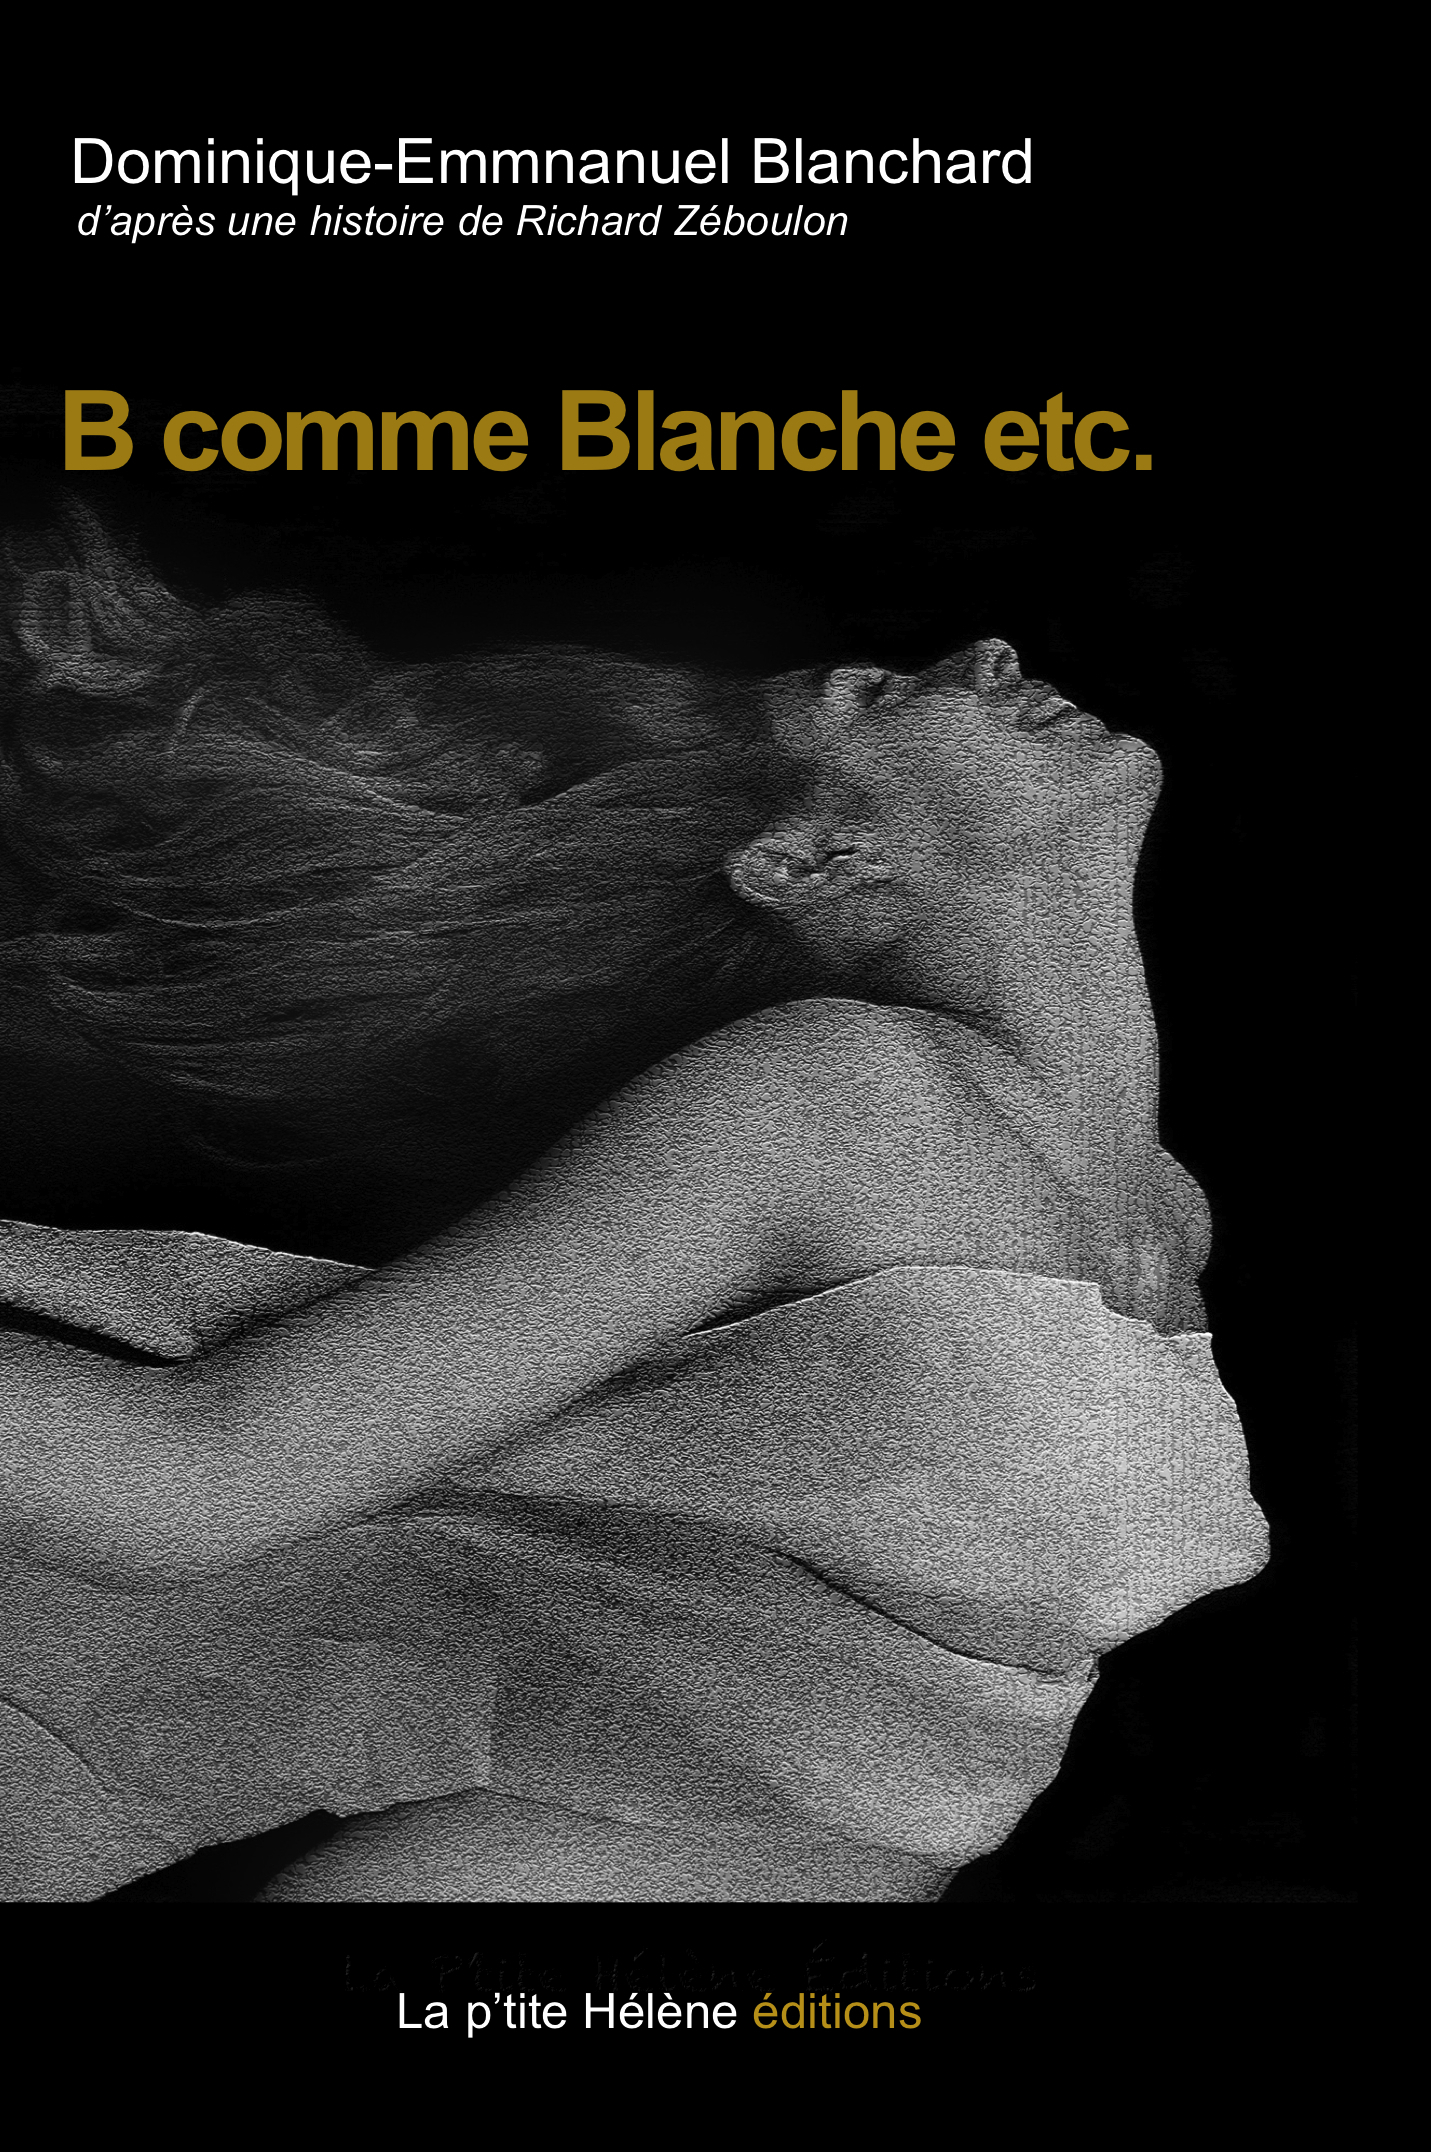 B COMME BLANCHE ETC.